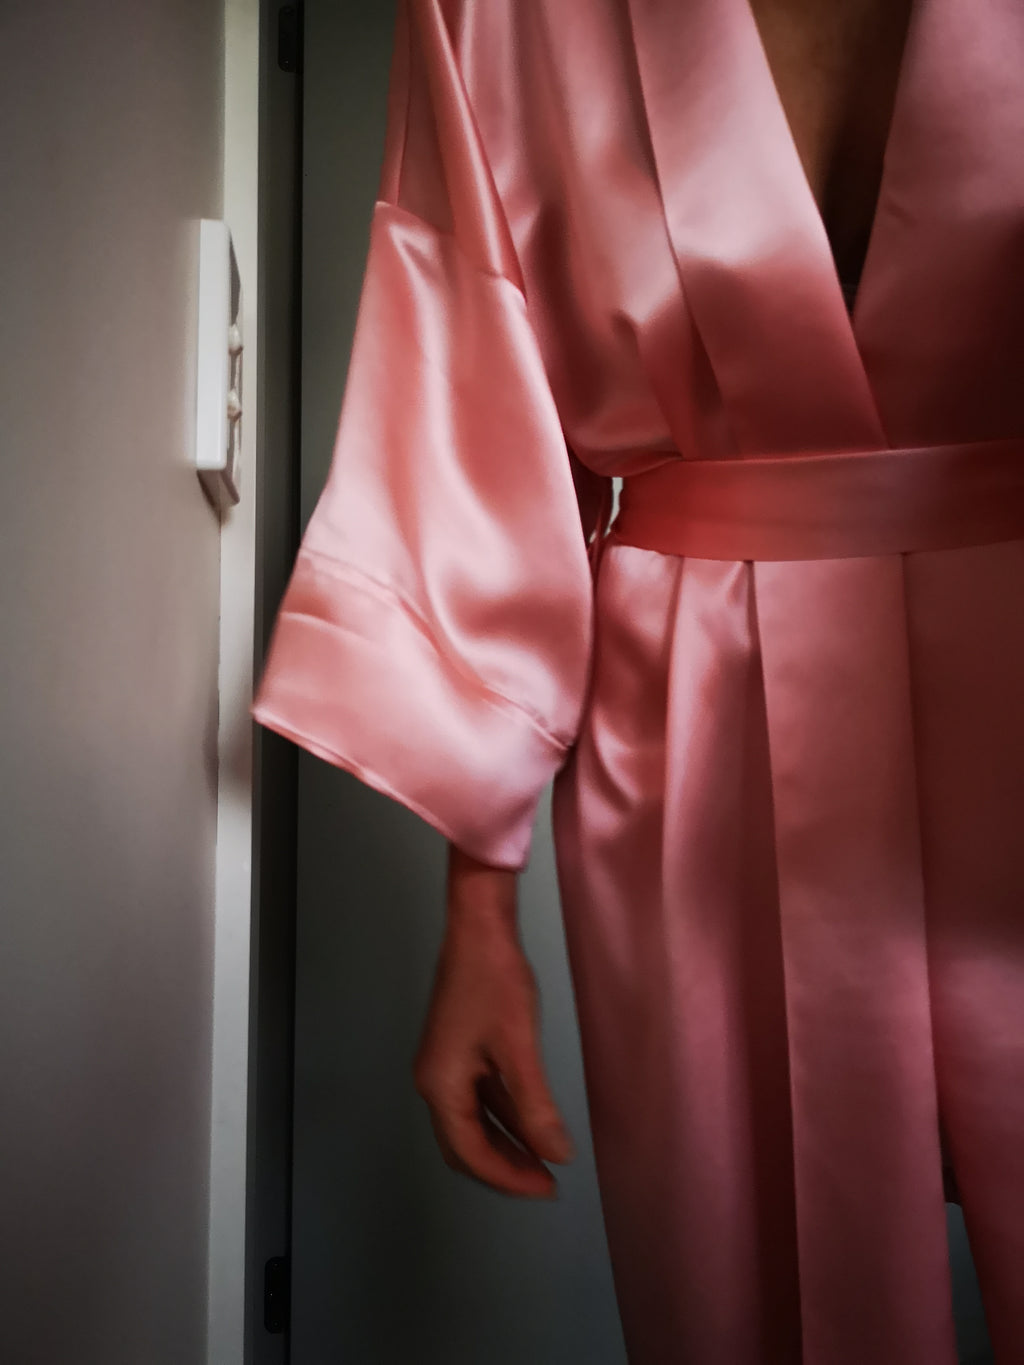 Silk Robe Mid-Thigh - Powder Pink